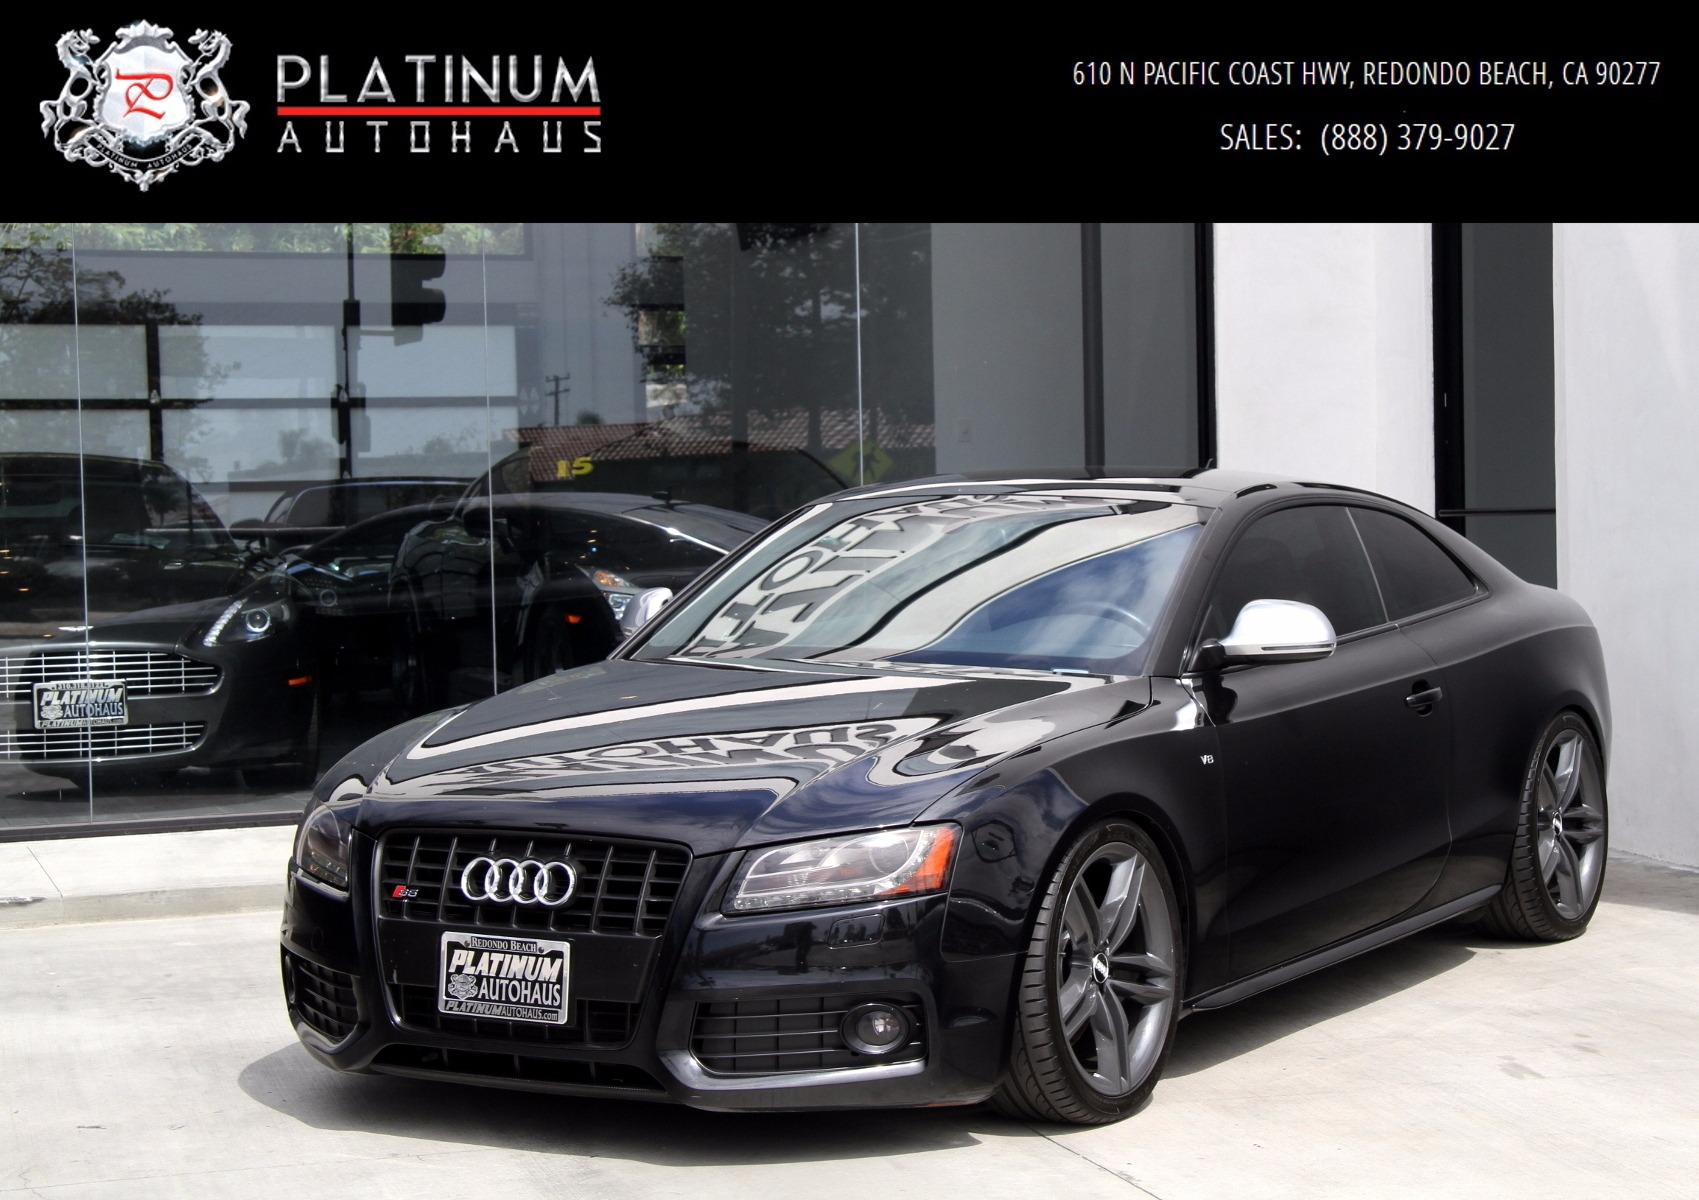 2009 Audi S5 4.2L Stock # 5910C for sale near Redondo Beach, CA | CA Audi Dealer